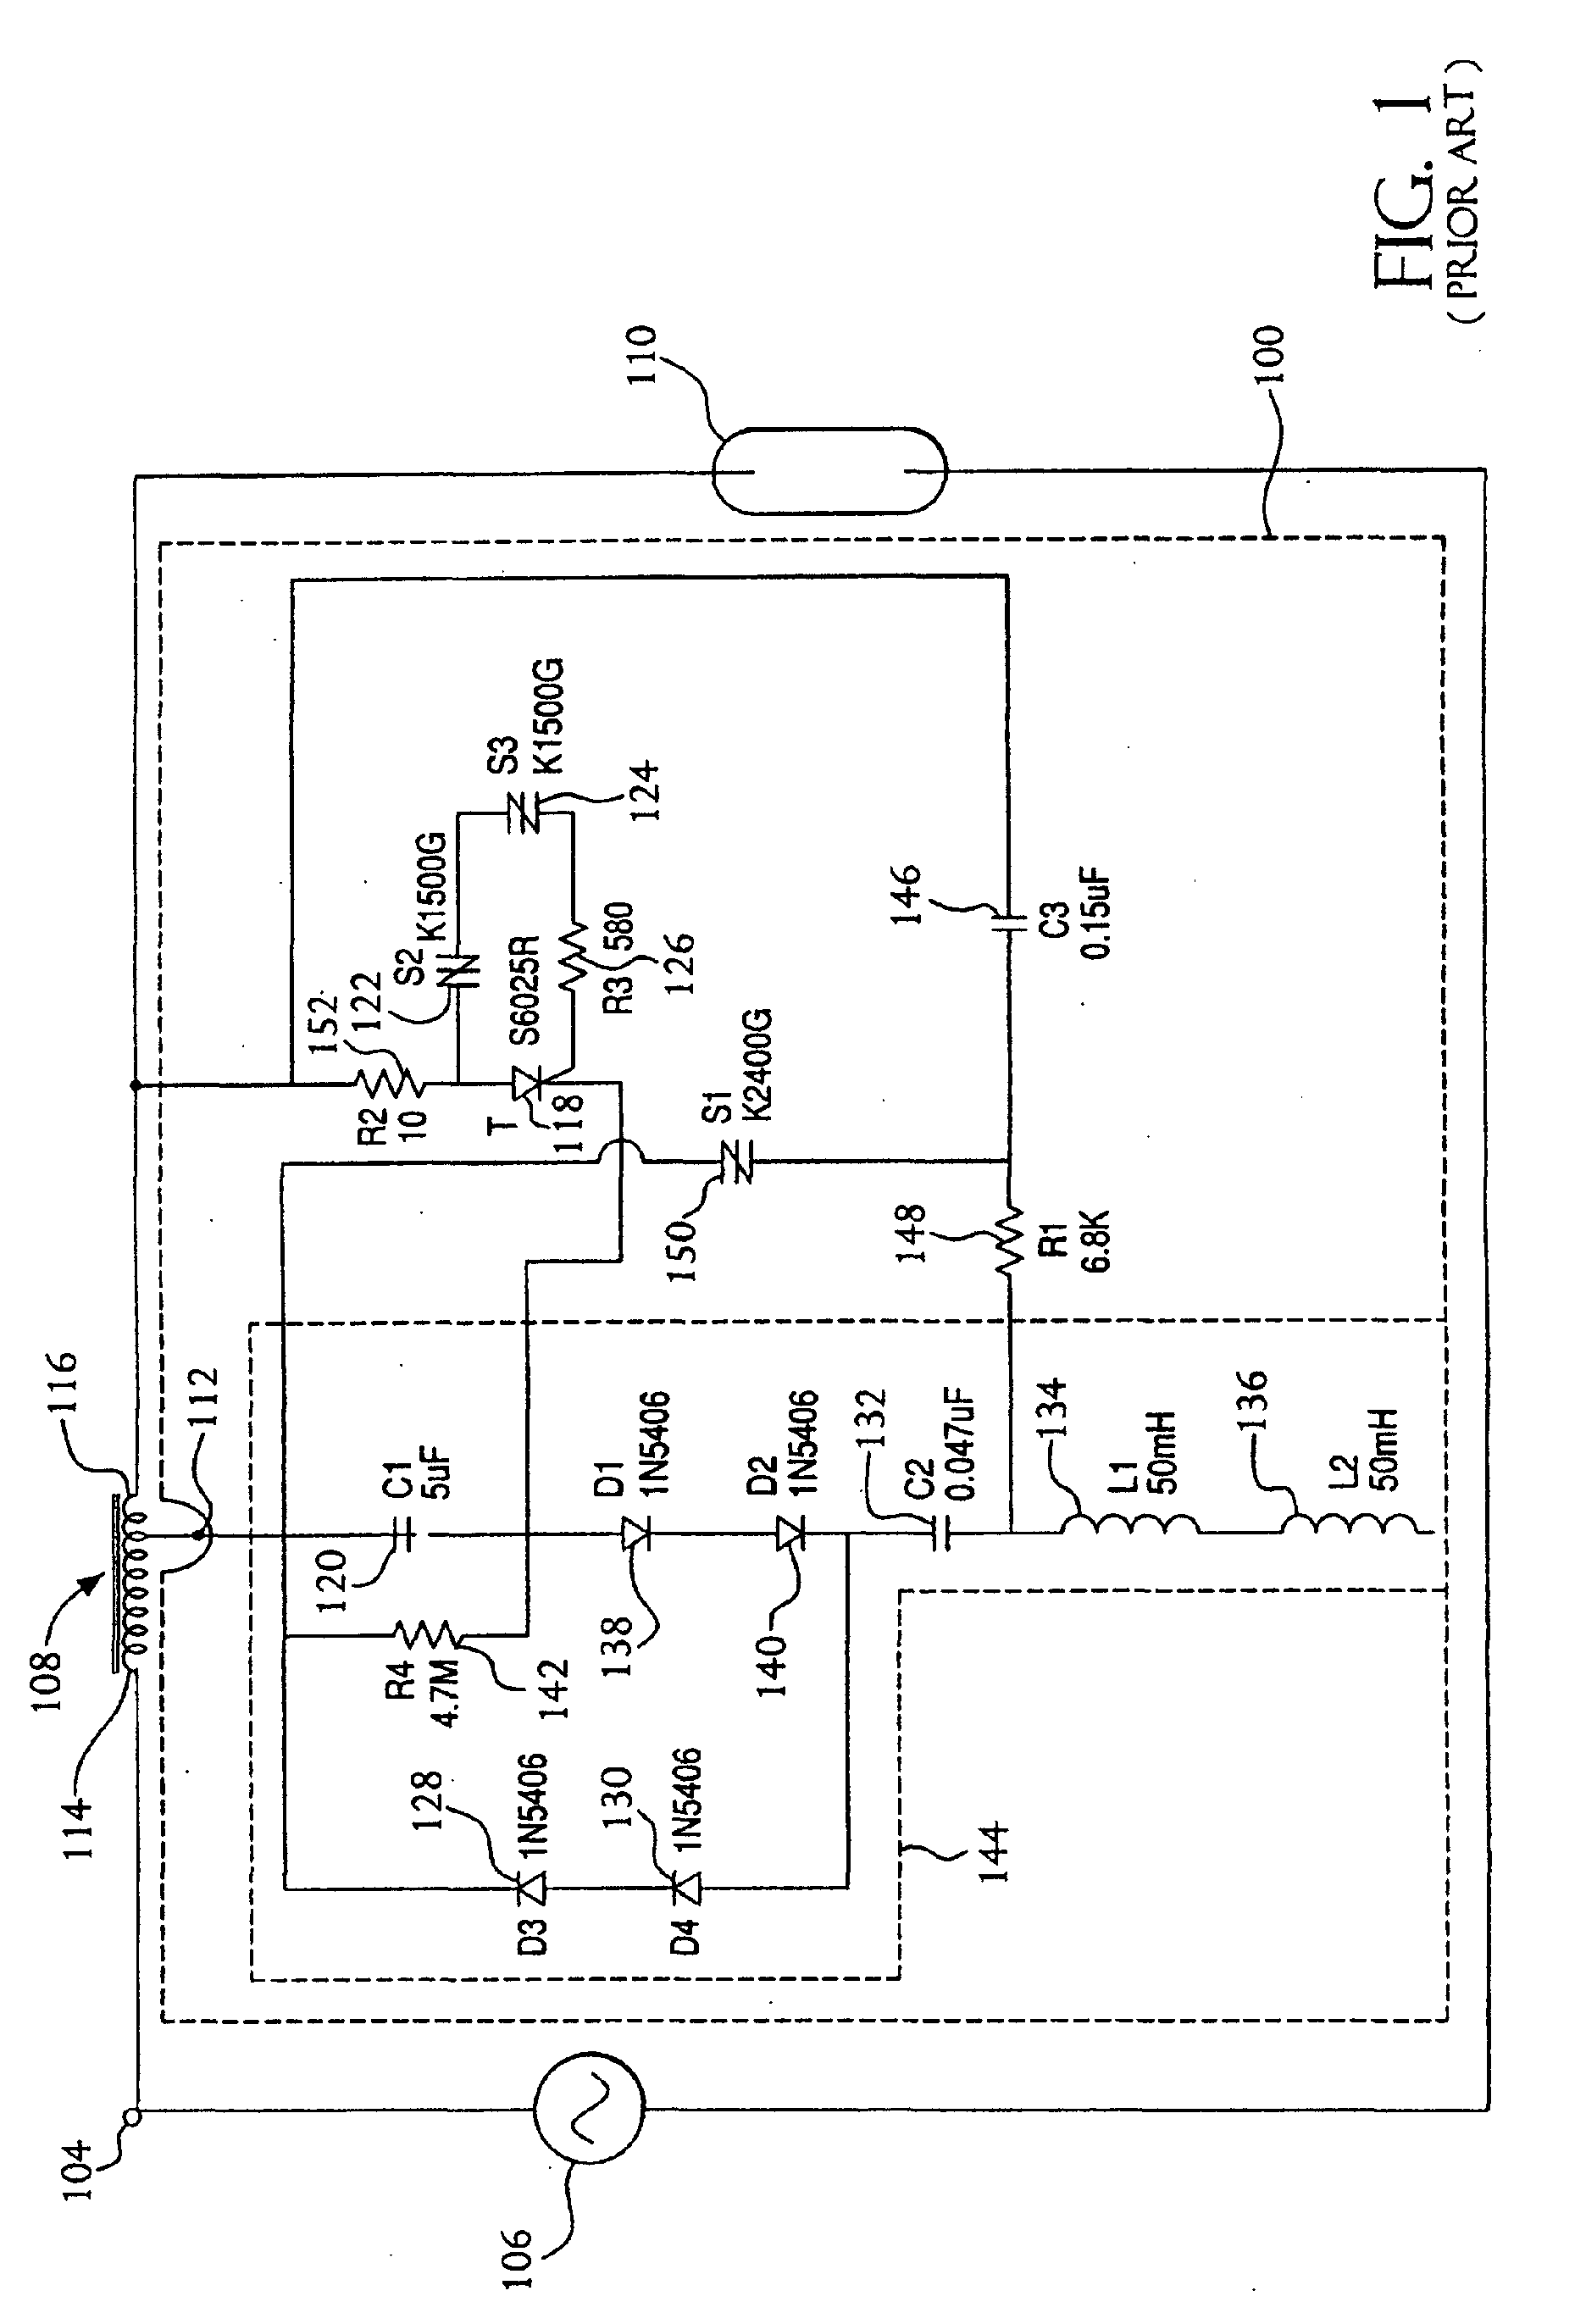 Patent Ep1206169a2 Method And Apparatus For Disabling Sodium Sidac Basic Operation Drawing